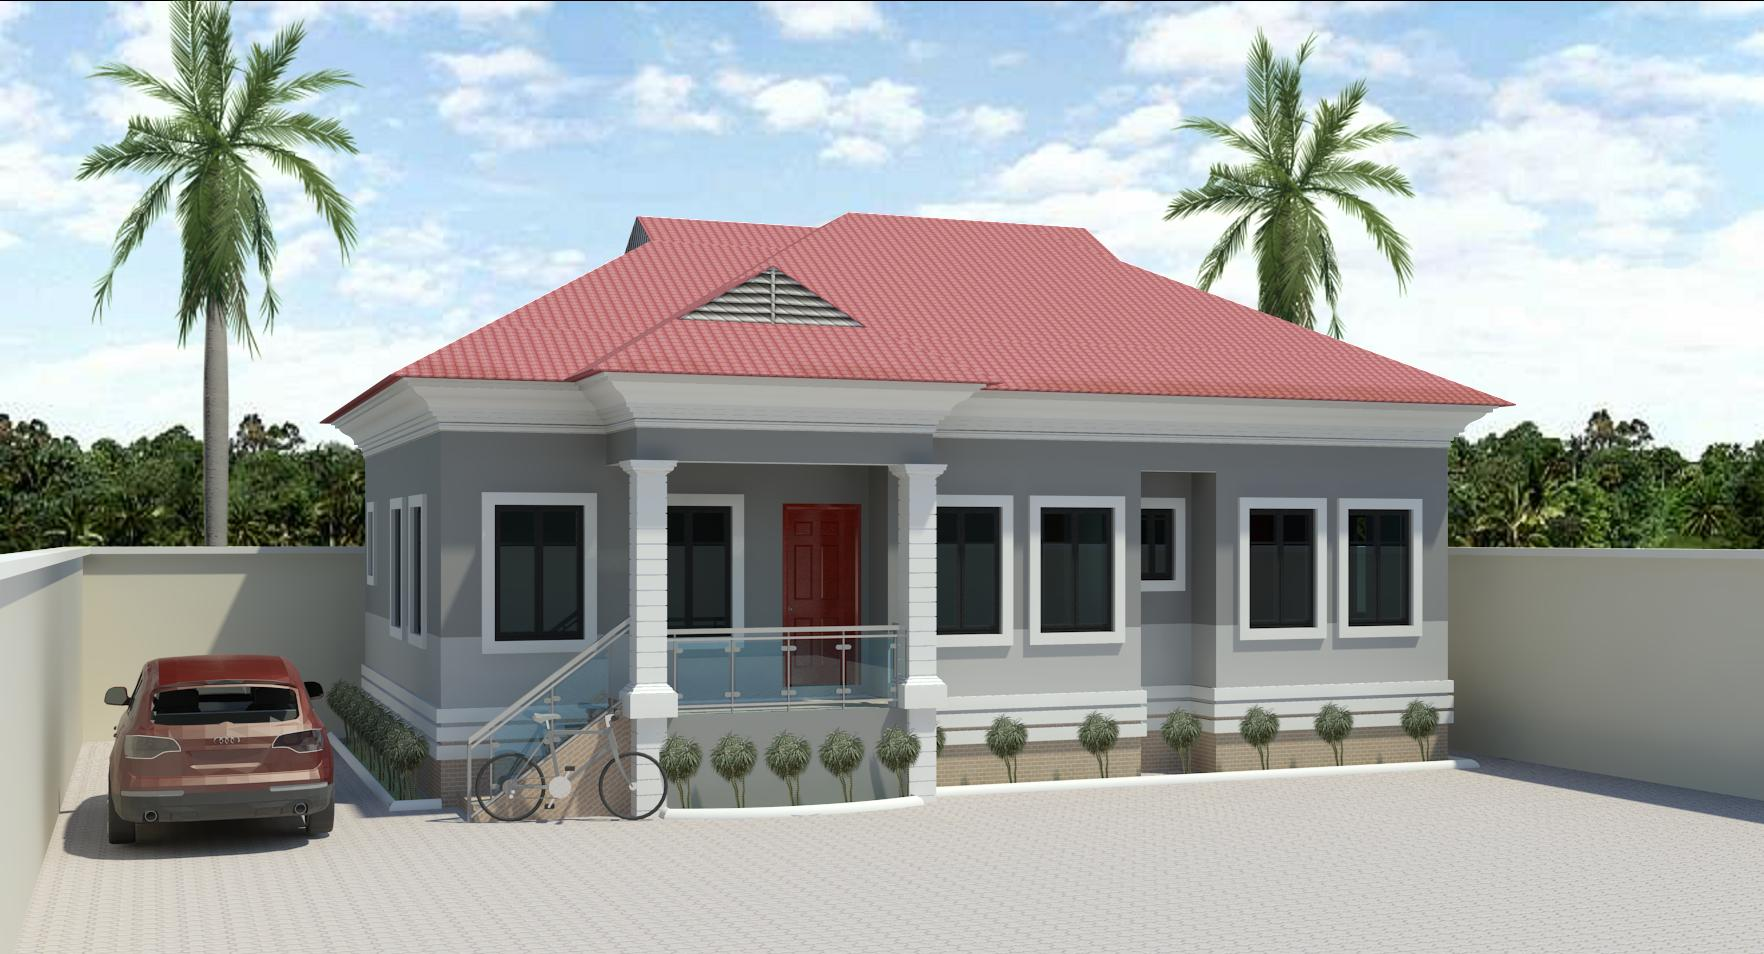 3bedroom bungalow designs in nigeria joy studio design for 3 bed room home